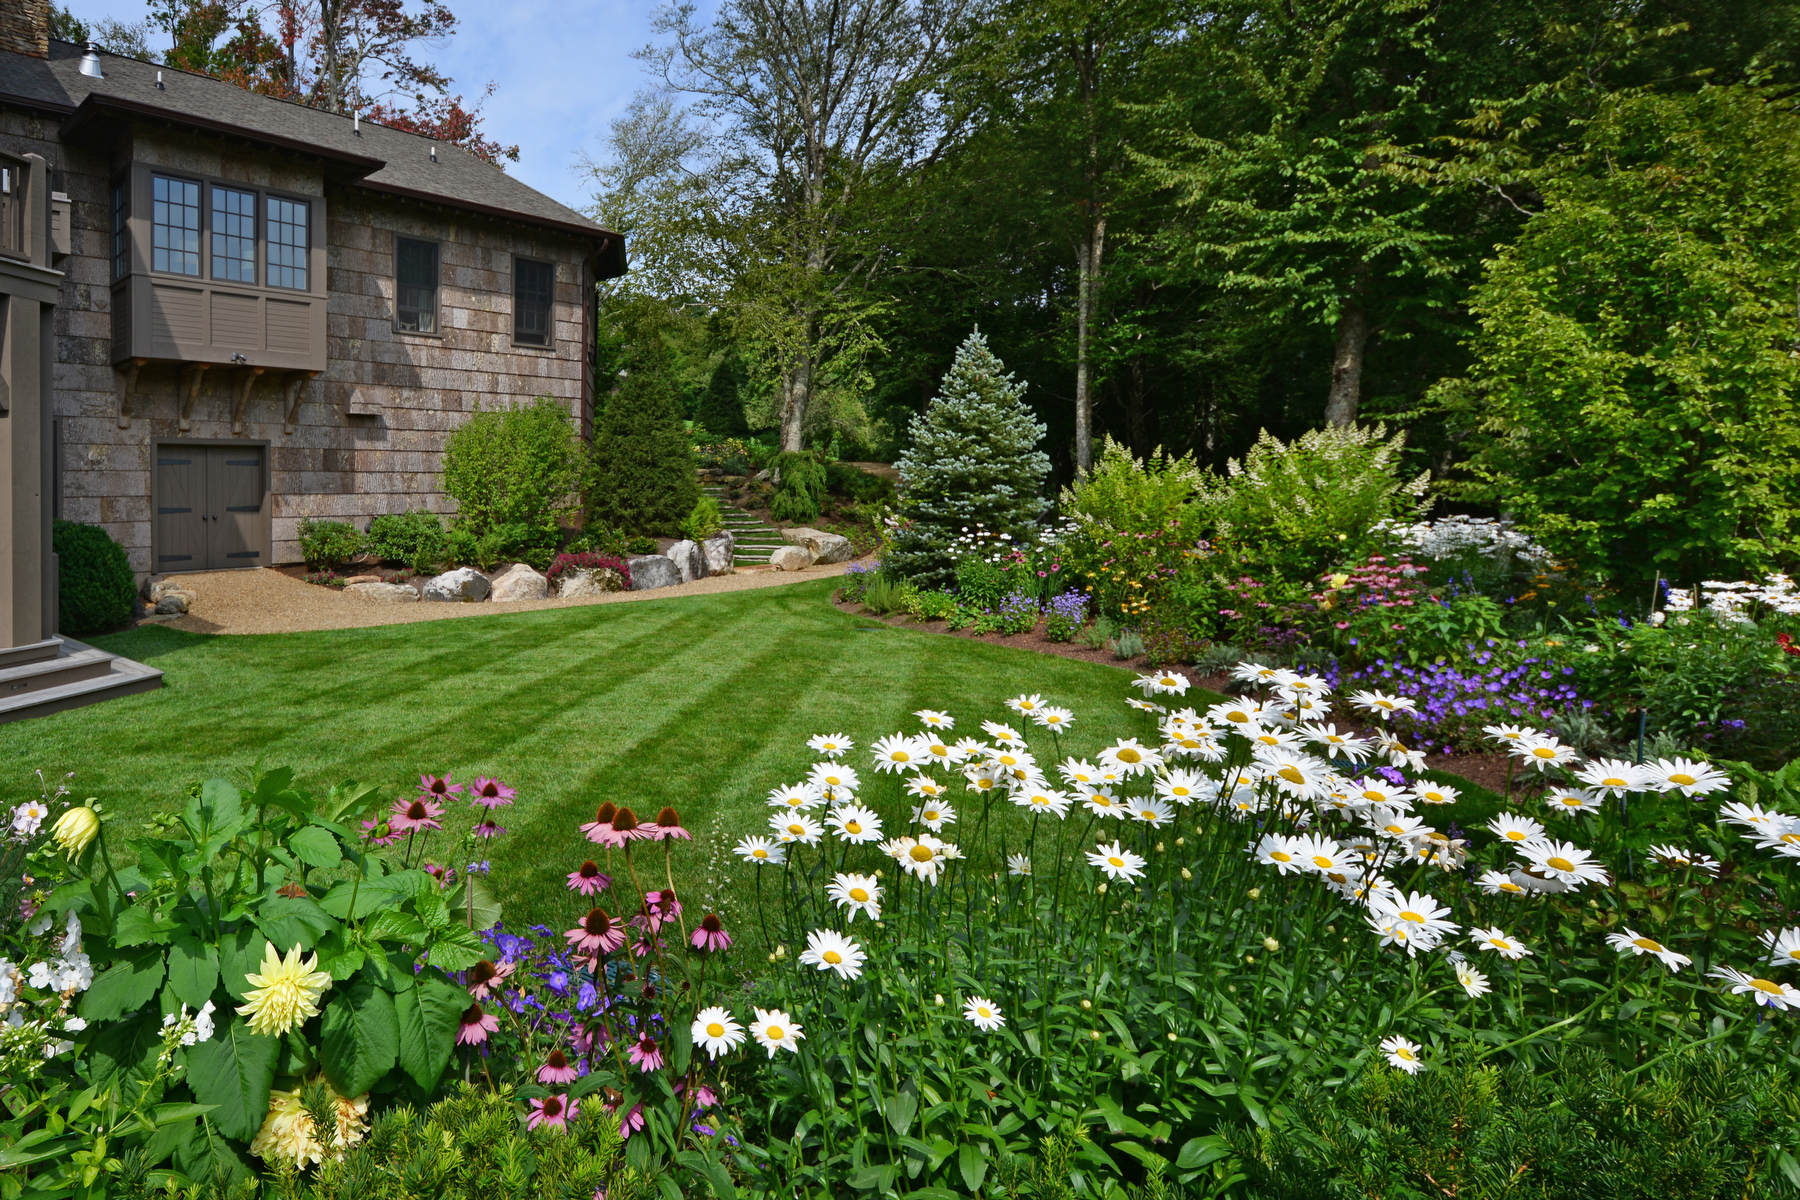 Photo courtesy of National Association of Landscape Professionals/Greenleaf Services, Inc., Linville, North Carolina